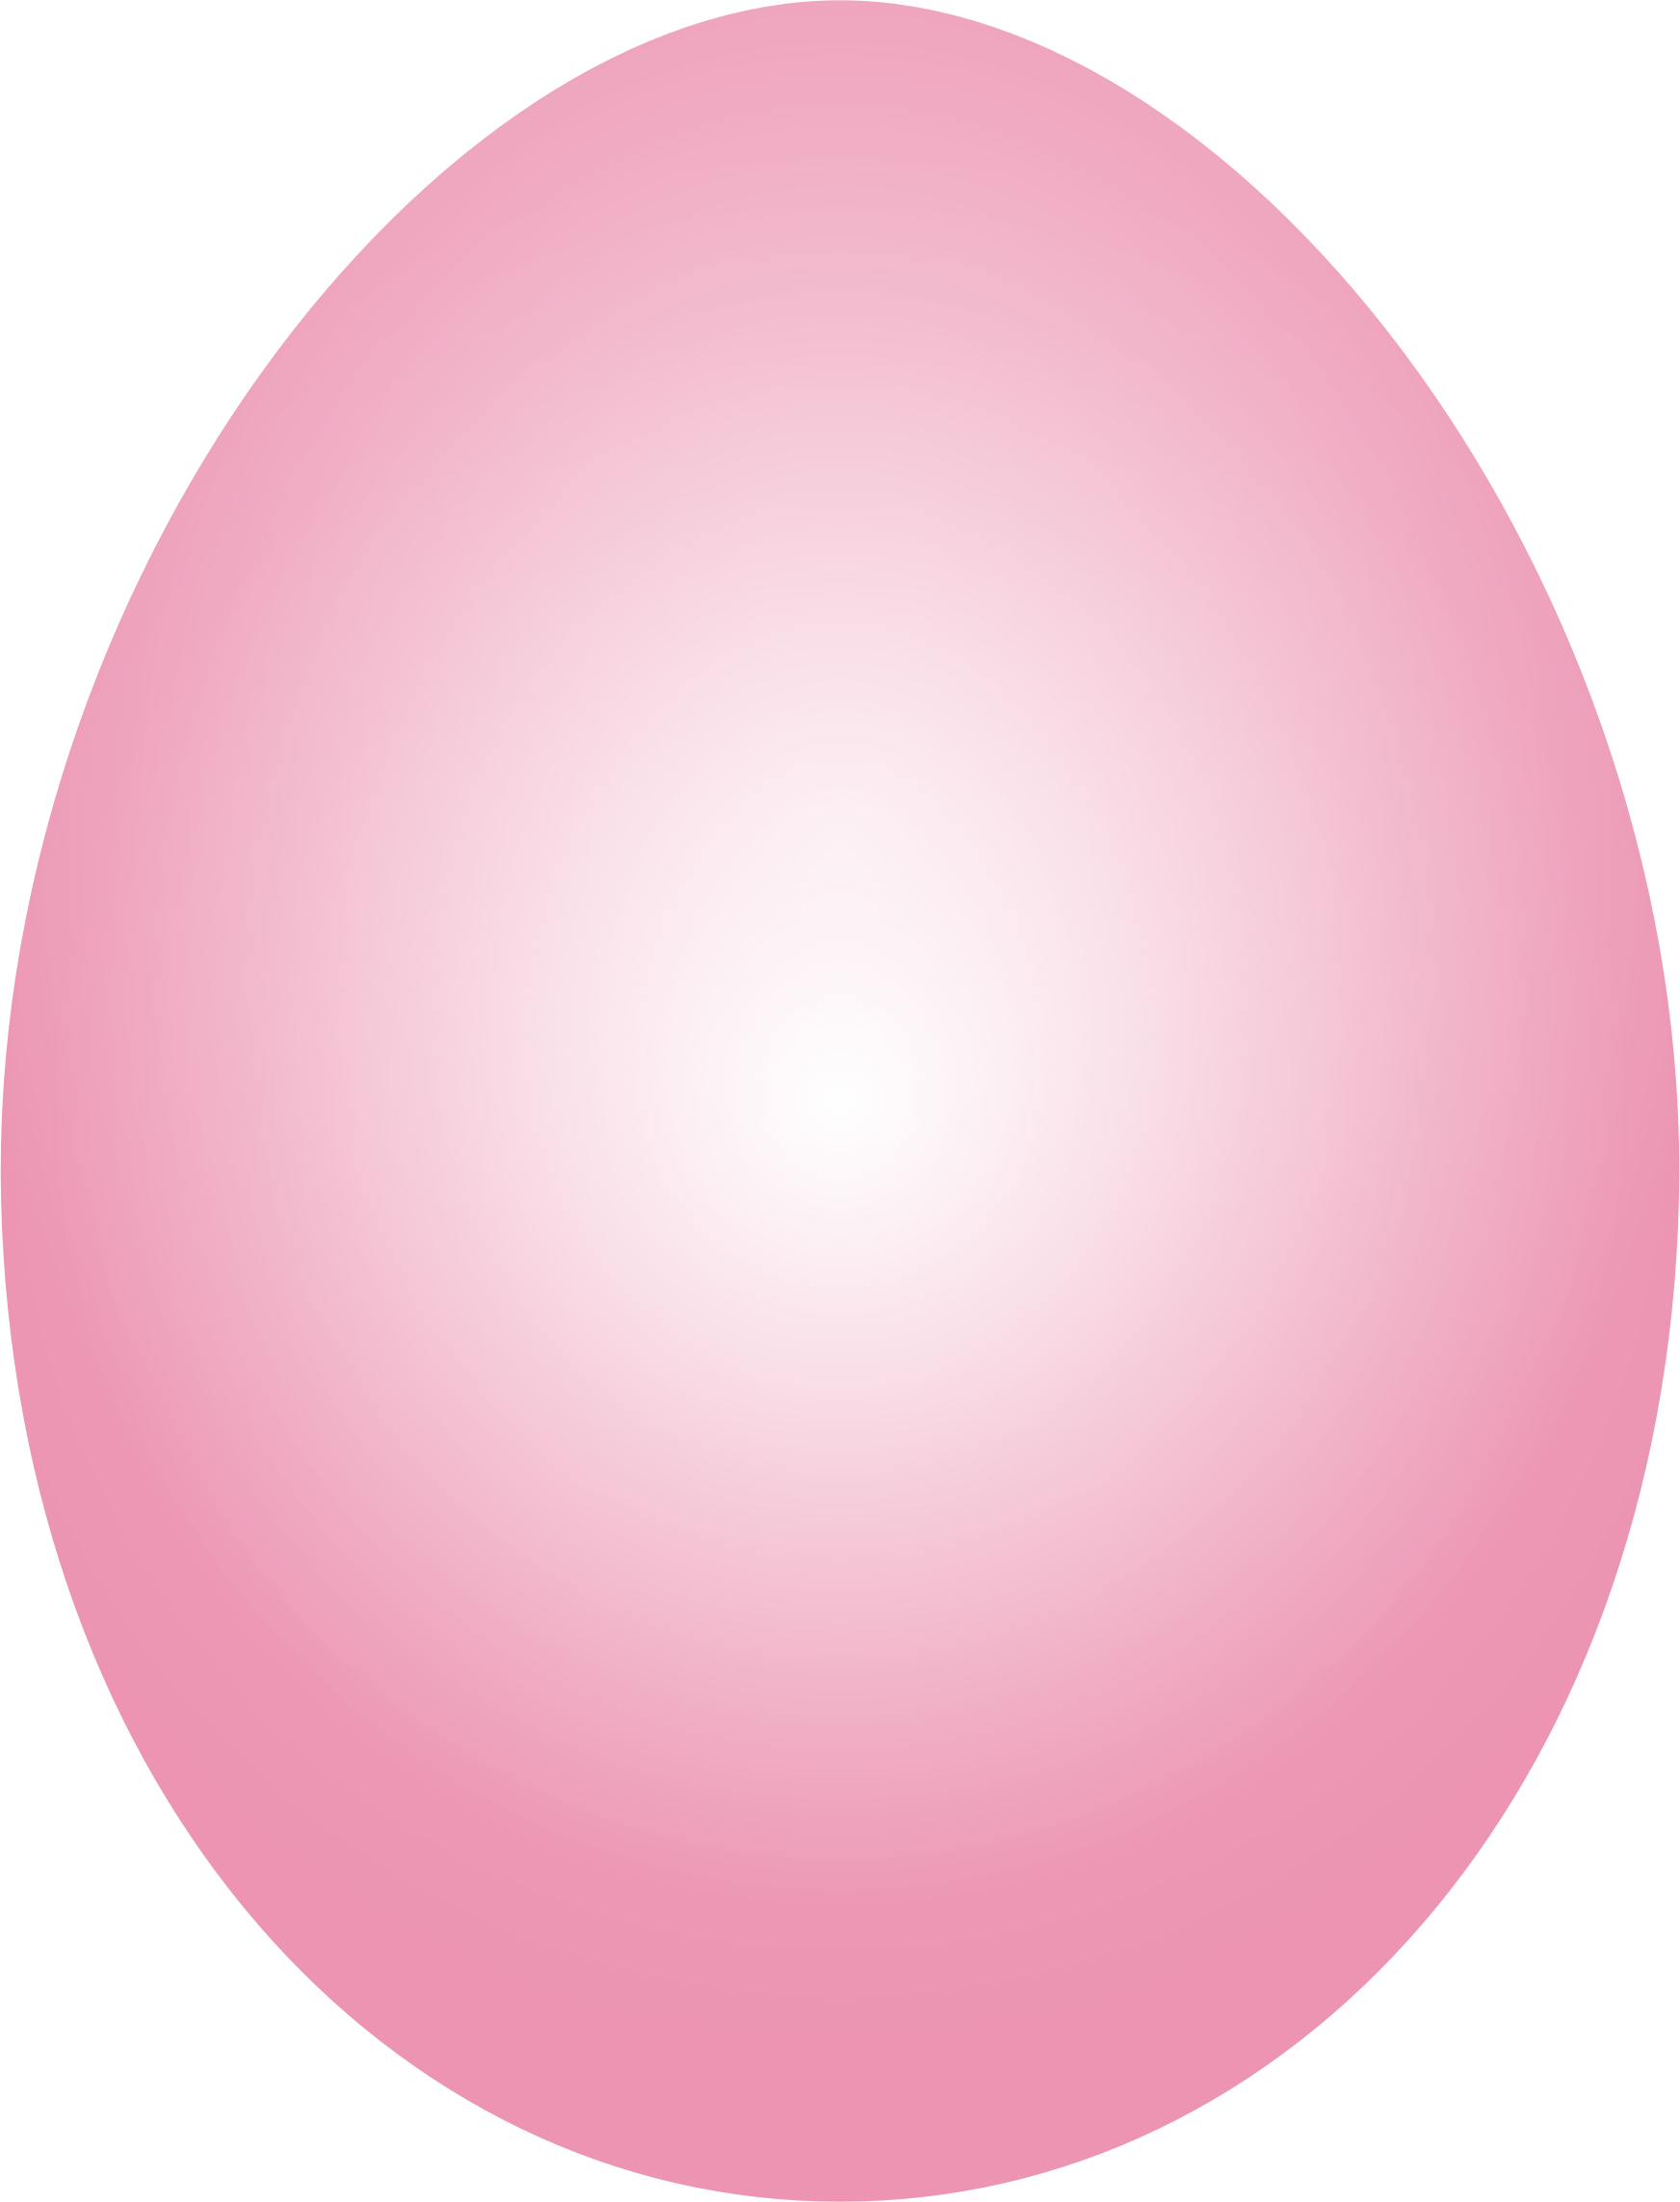 Eggs clipart transparent background. Pink easter egg